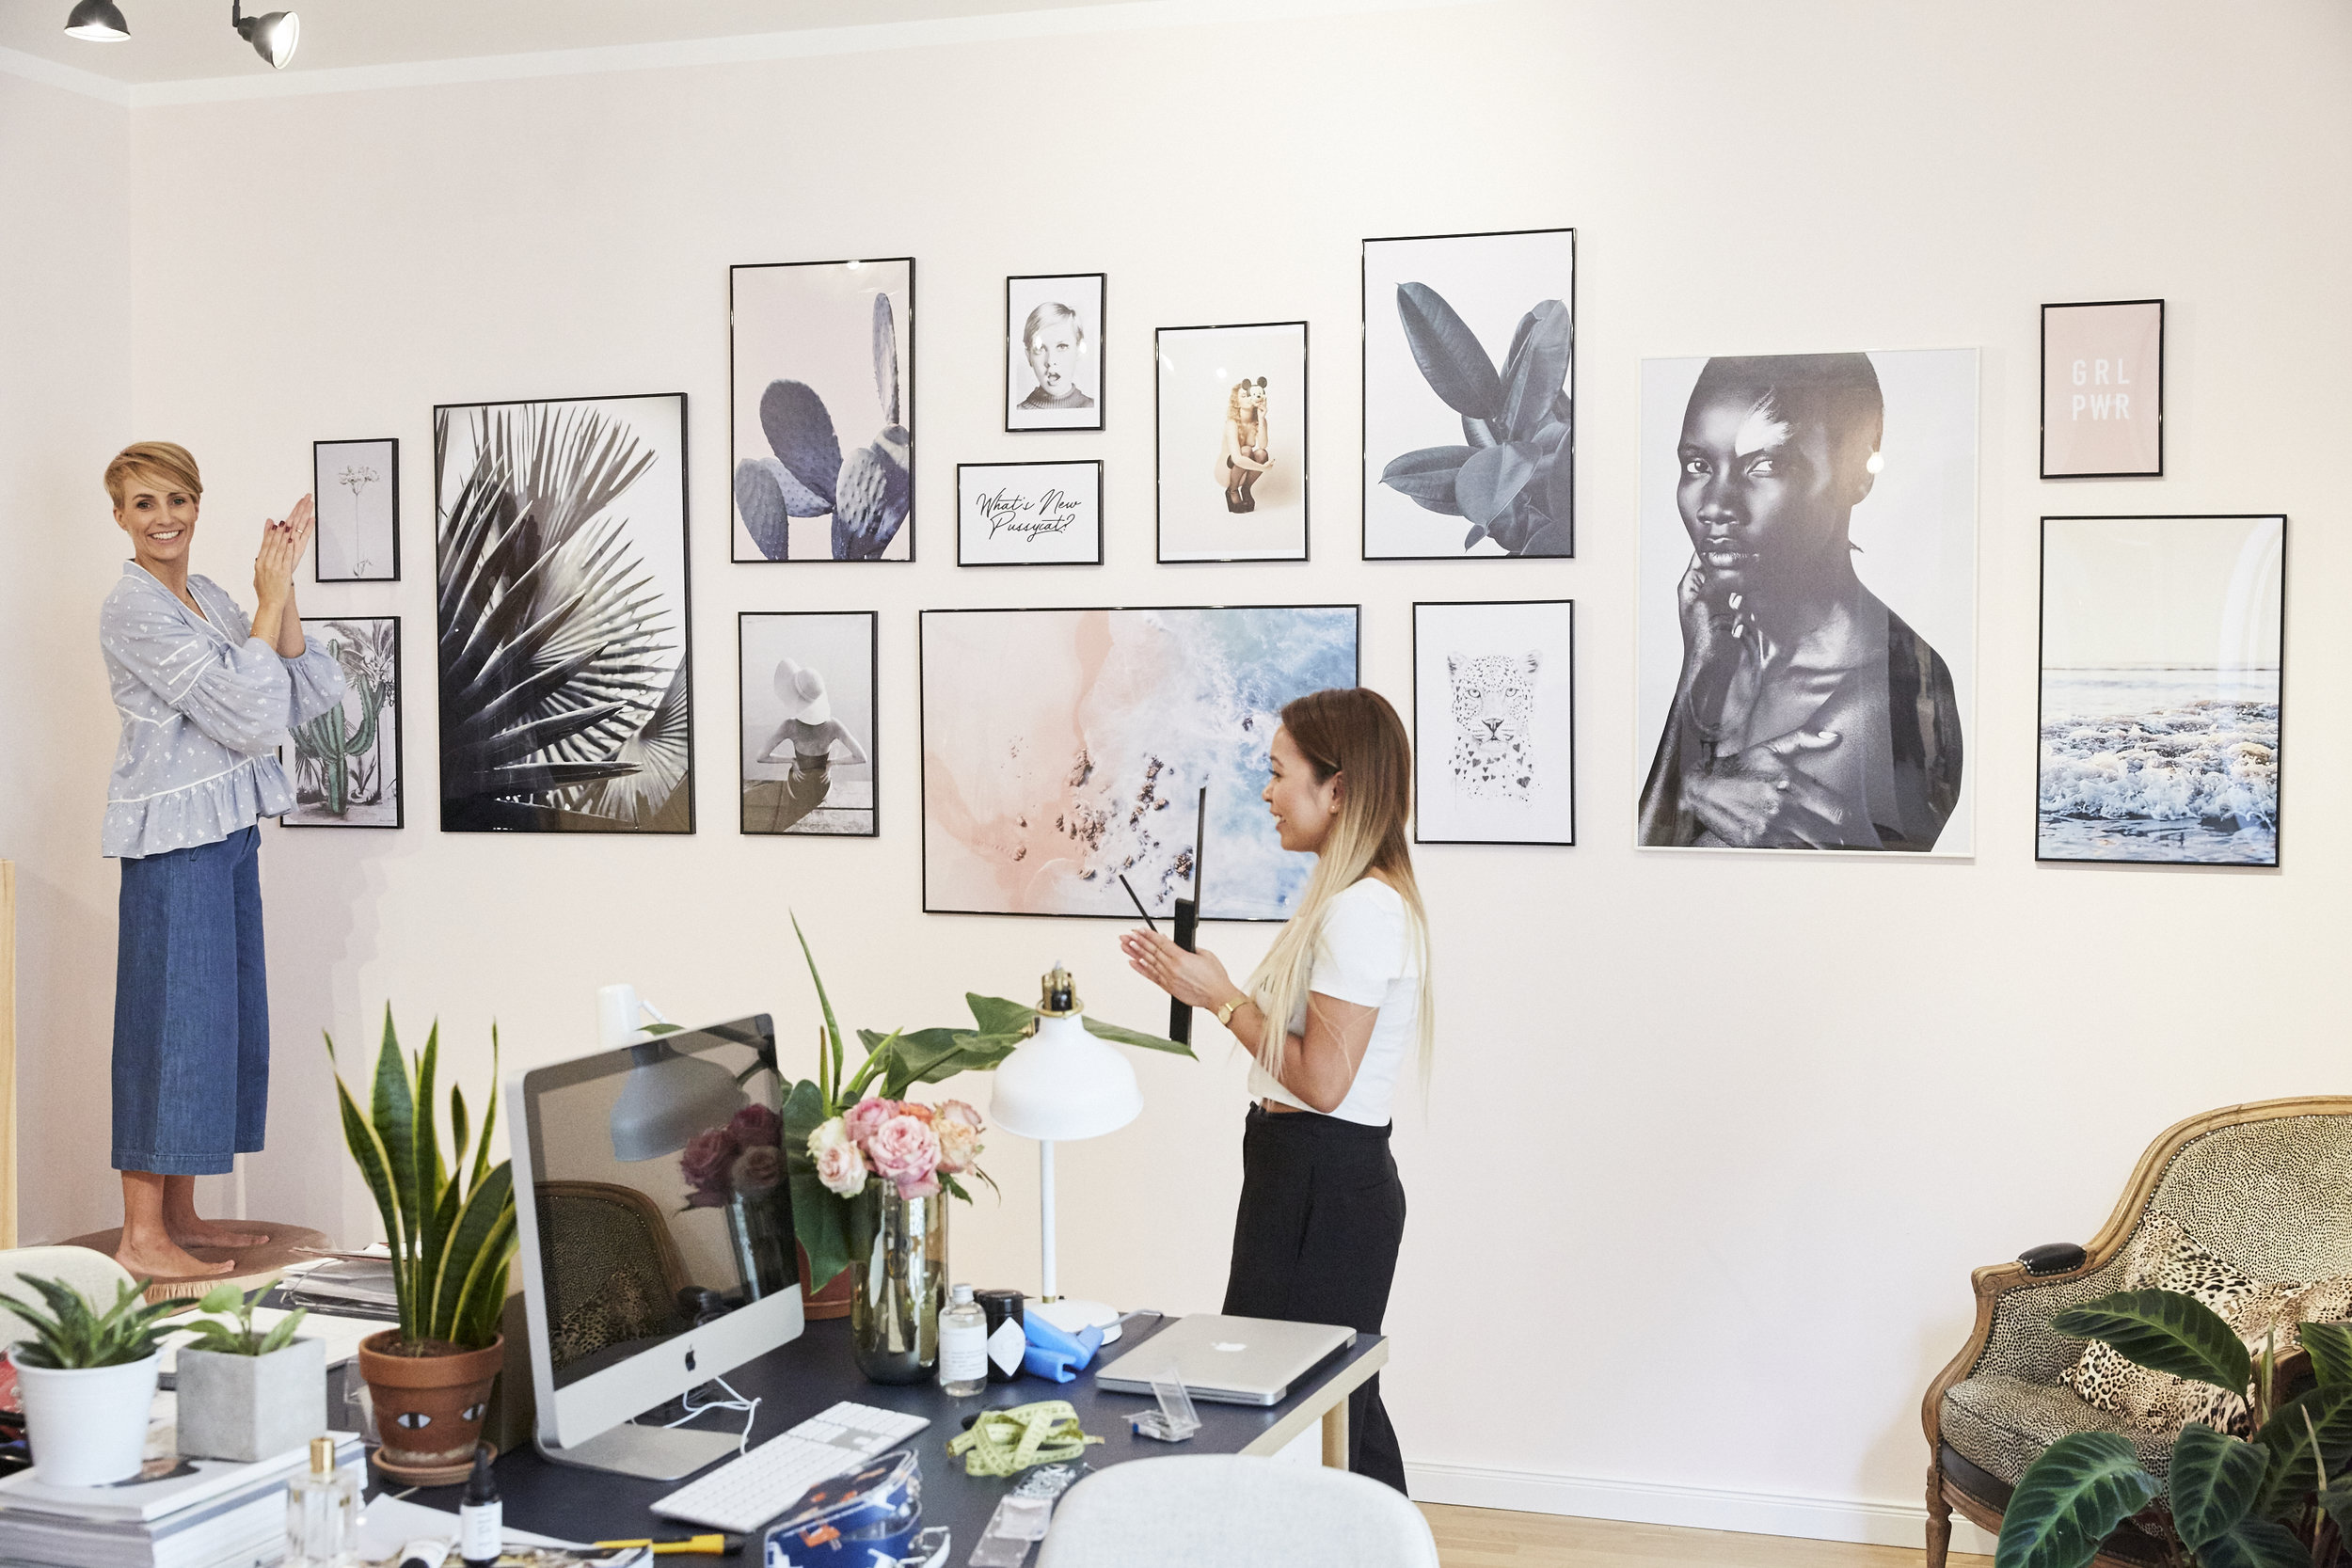 Miriam_jacks_bilderwand_juniqe_office_design_teamwork.jpg